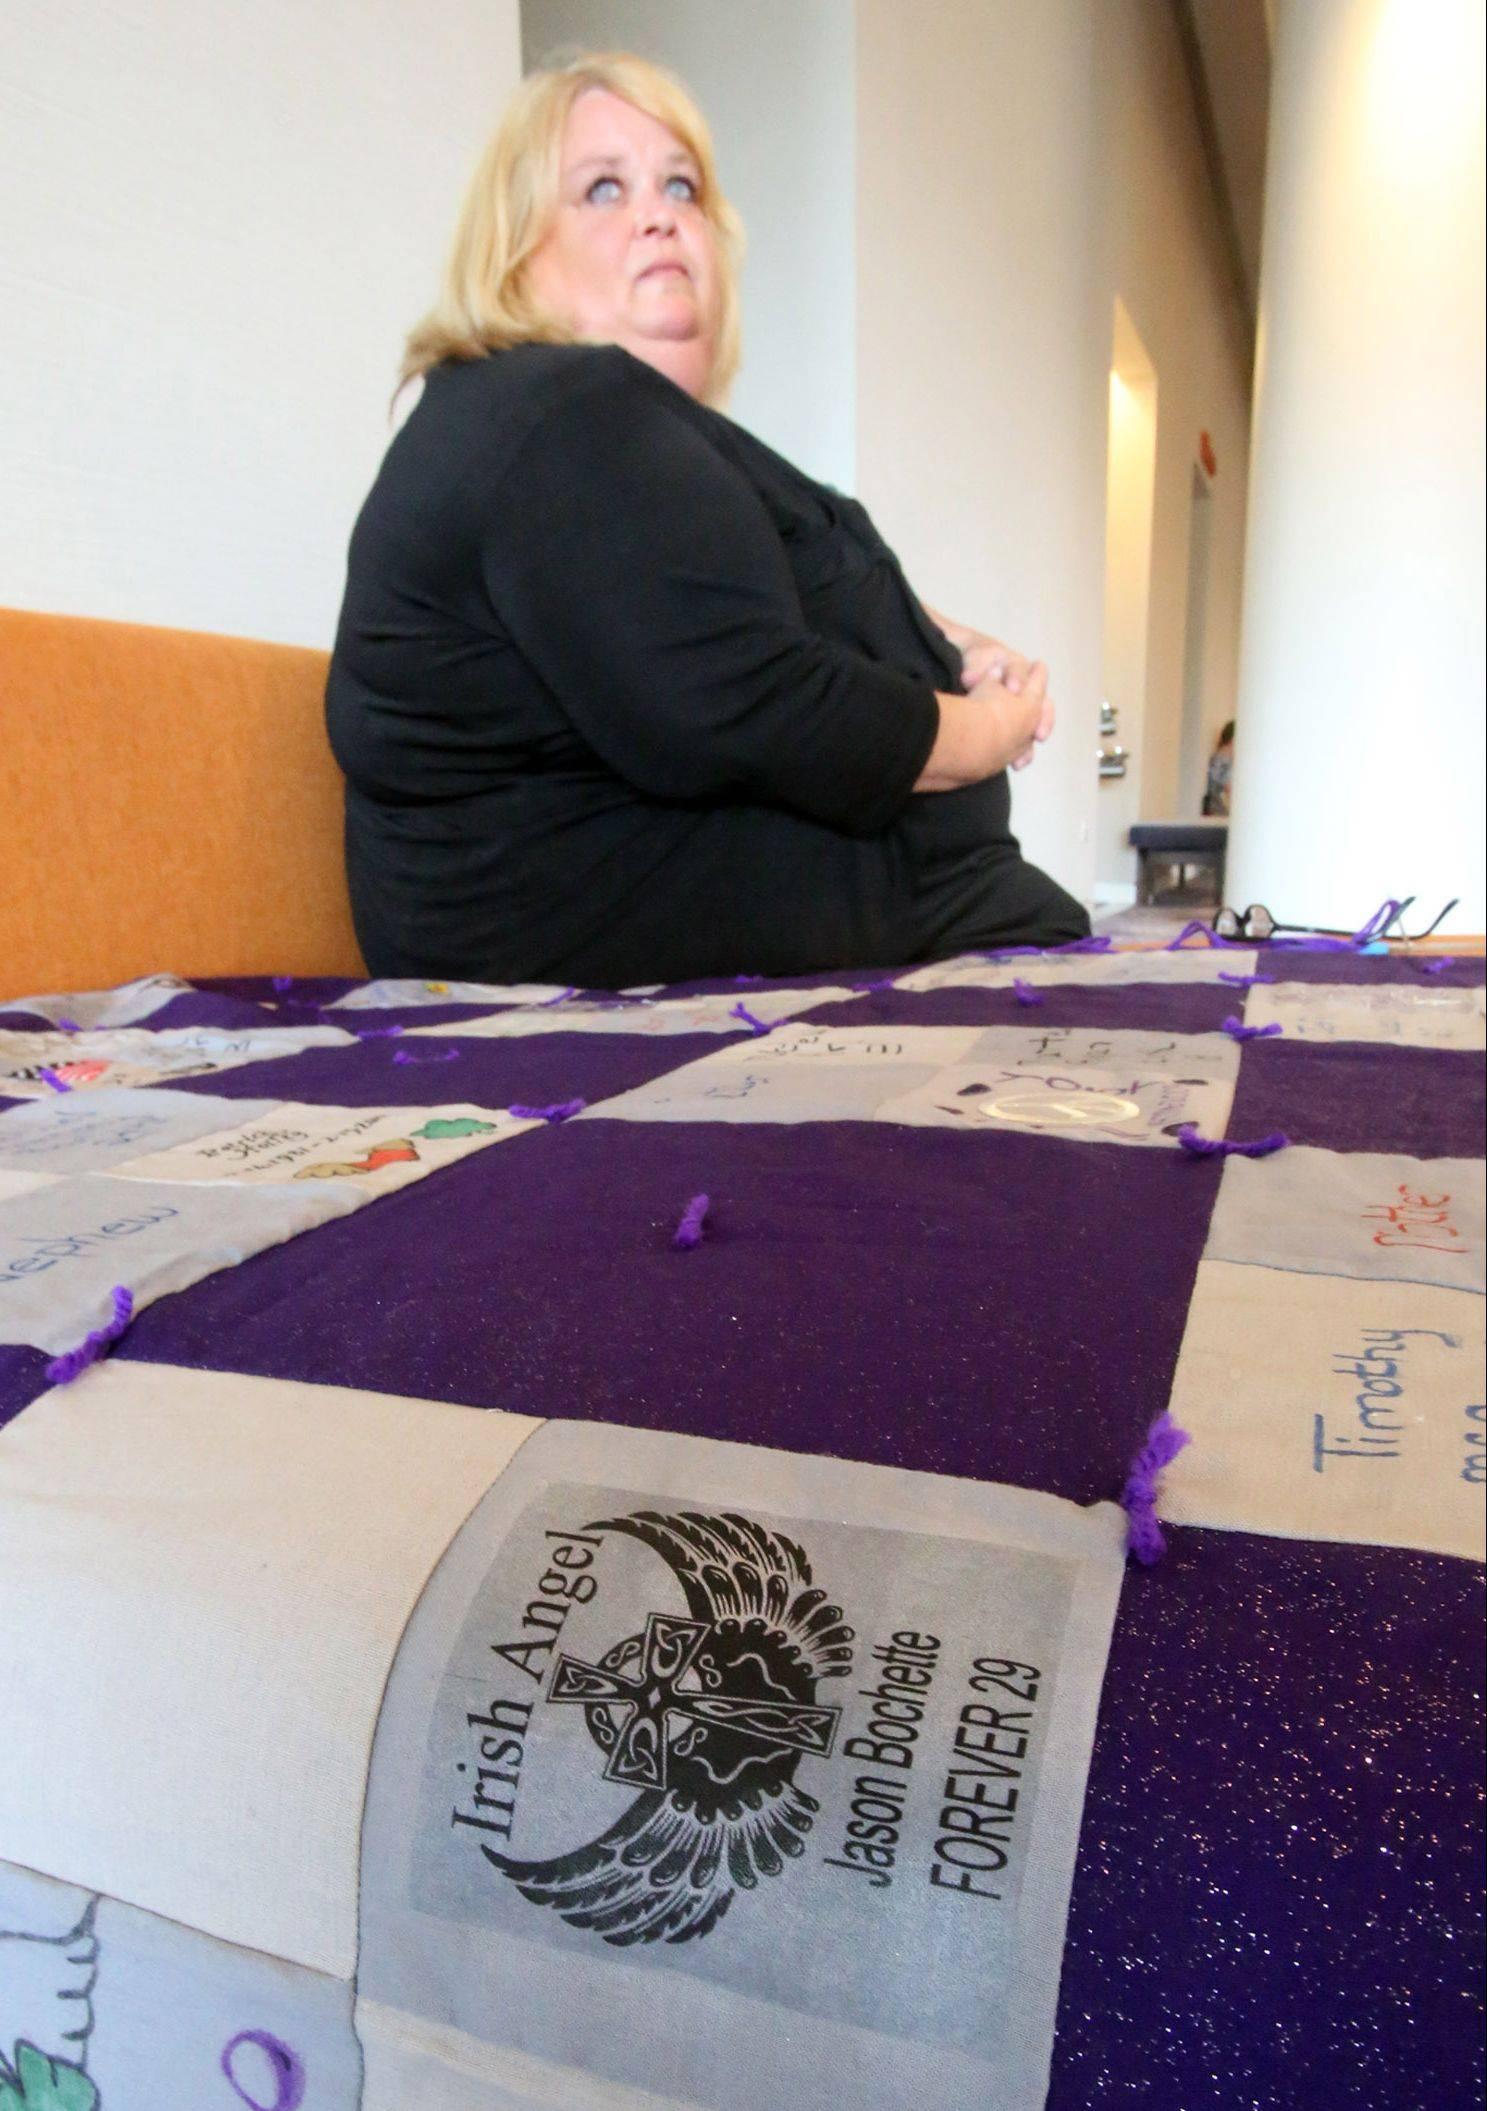 "Terri Dudar of Carpentersville made a 100-square quilt, with each square memorializing a suburban person who died of a heroin overdose. Among them is her son,""Irish Angel"" Jason Bochette, who died in 2008 at age 29."